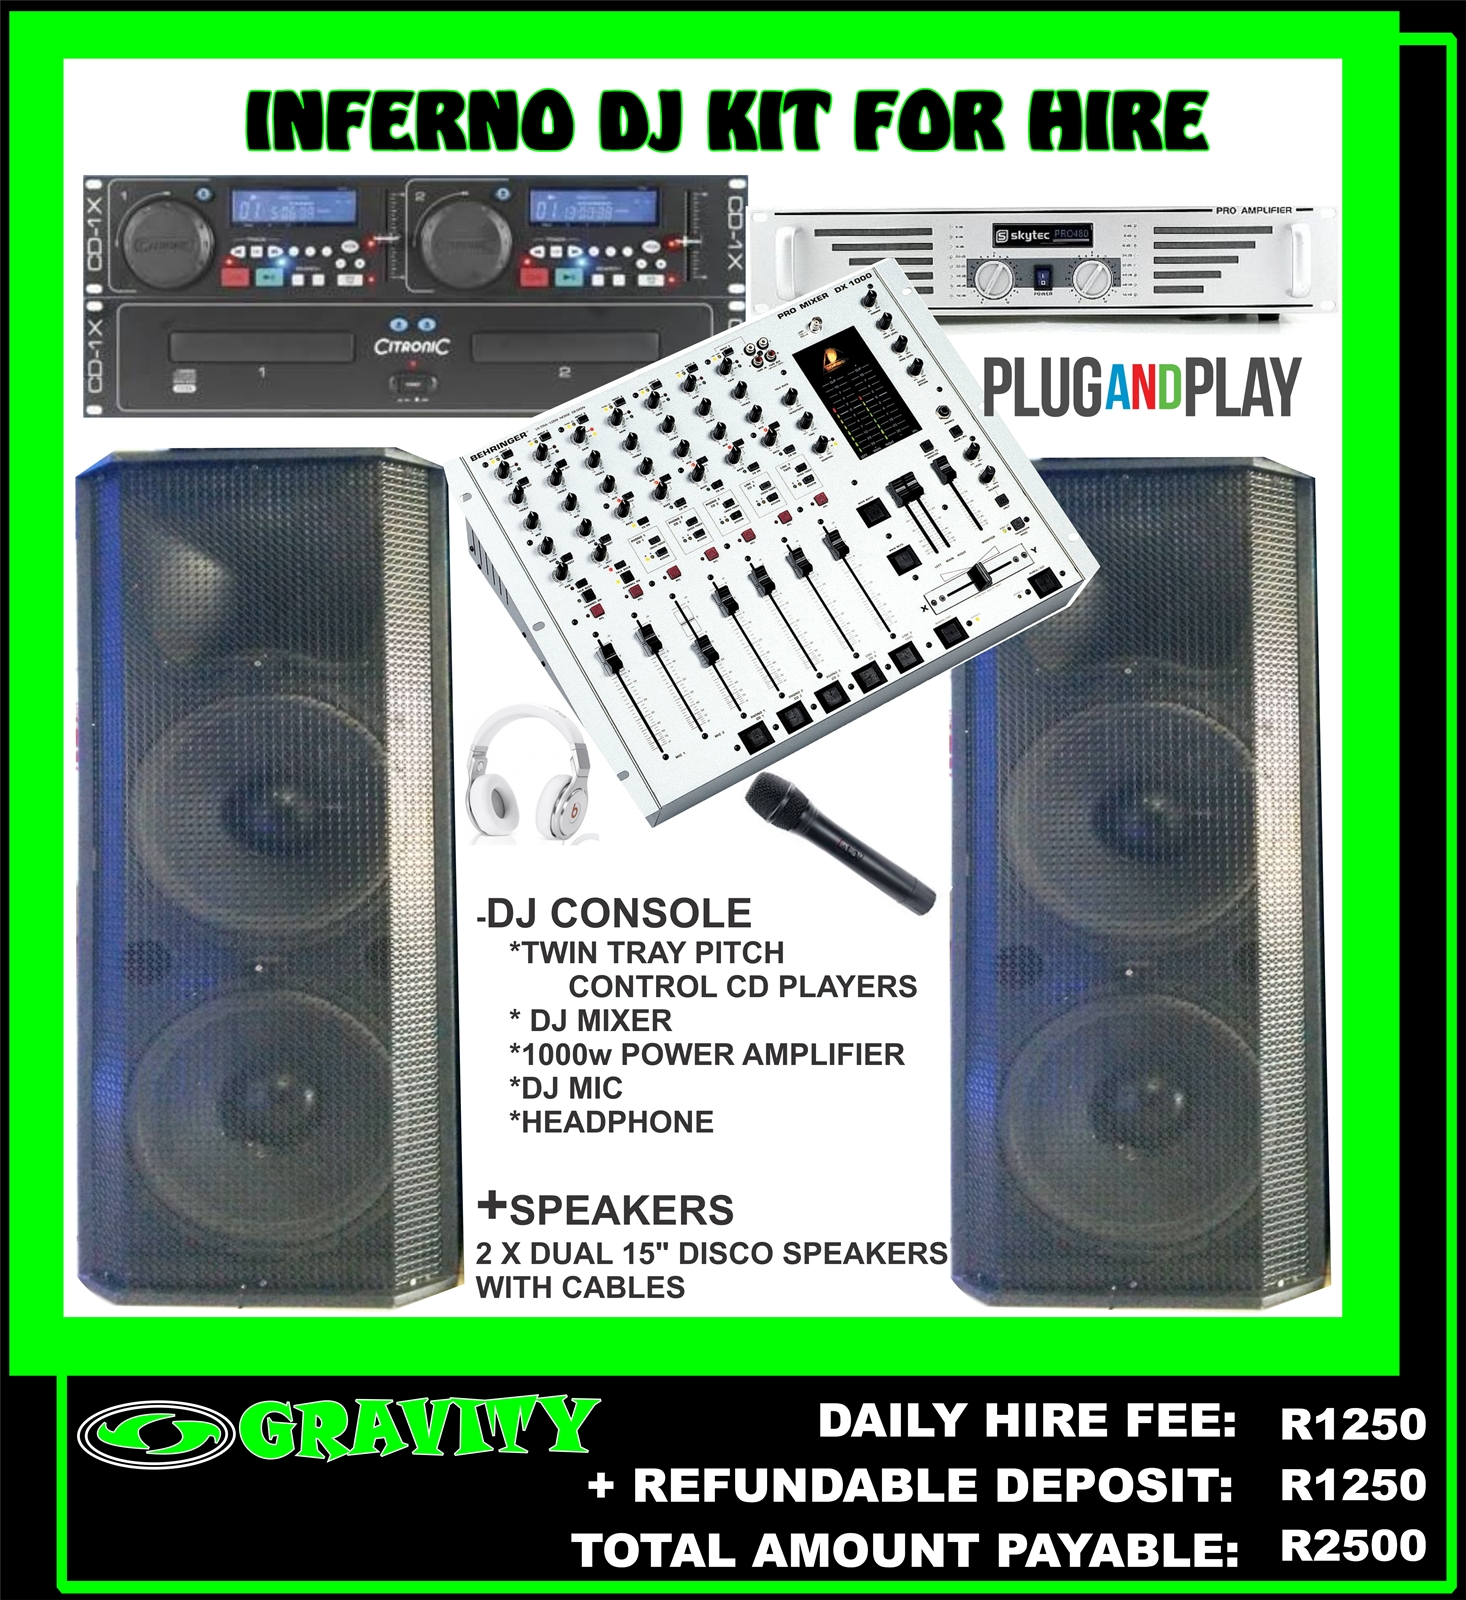 SOUND EQUIPMENT FOR HIRE - GRAVITY DJ STORE GRAVITY SOUND LIGHTING